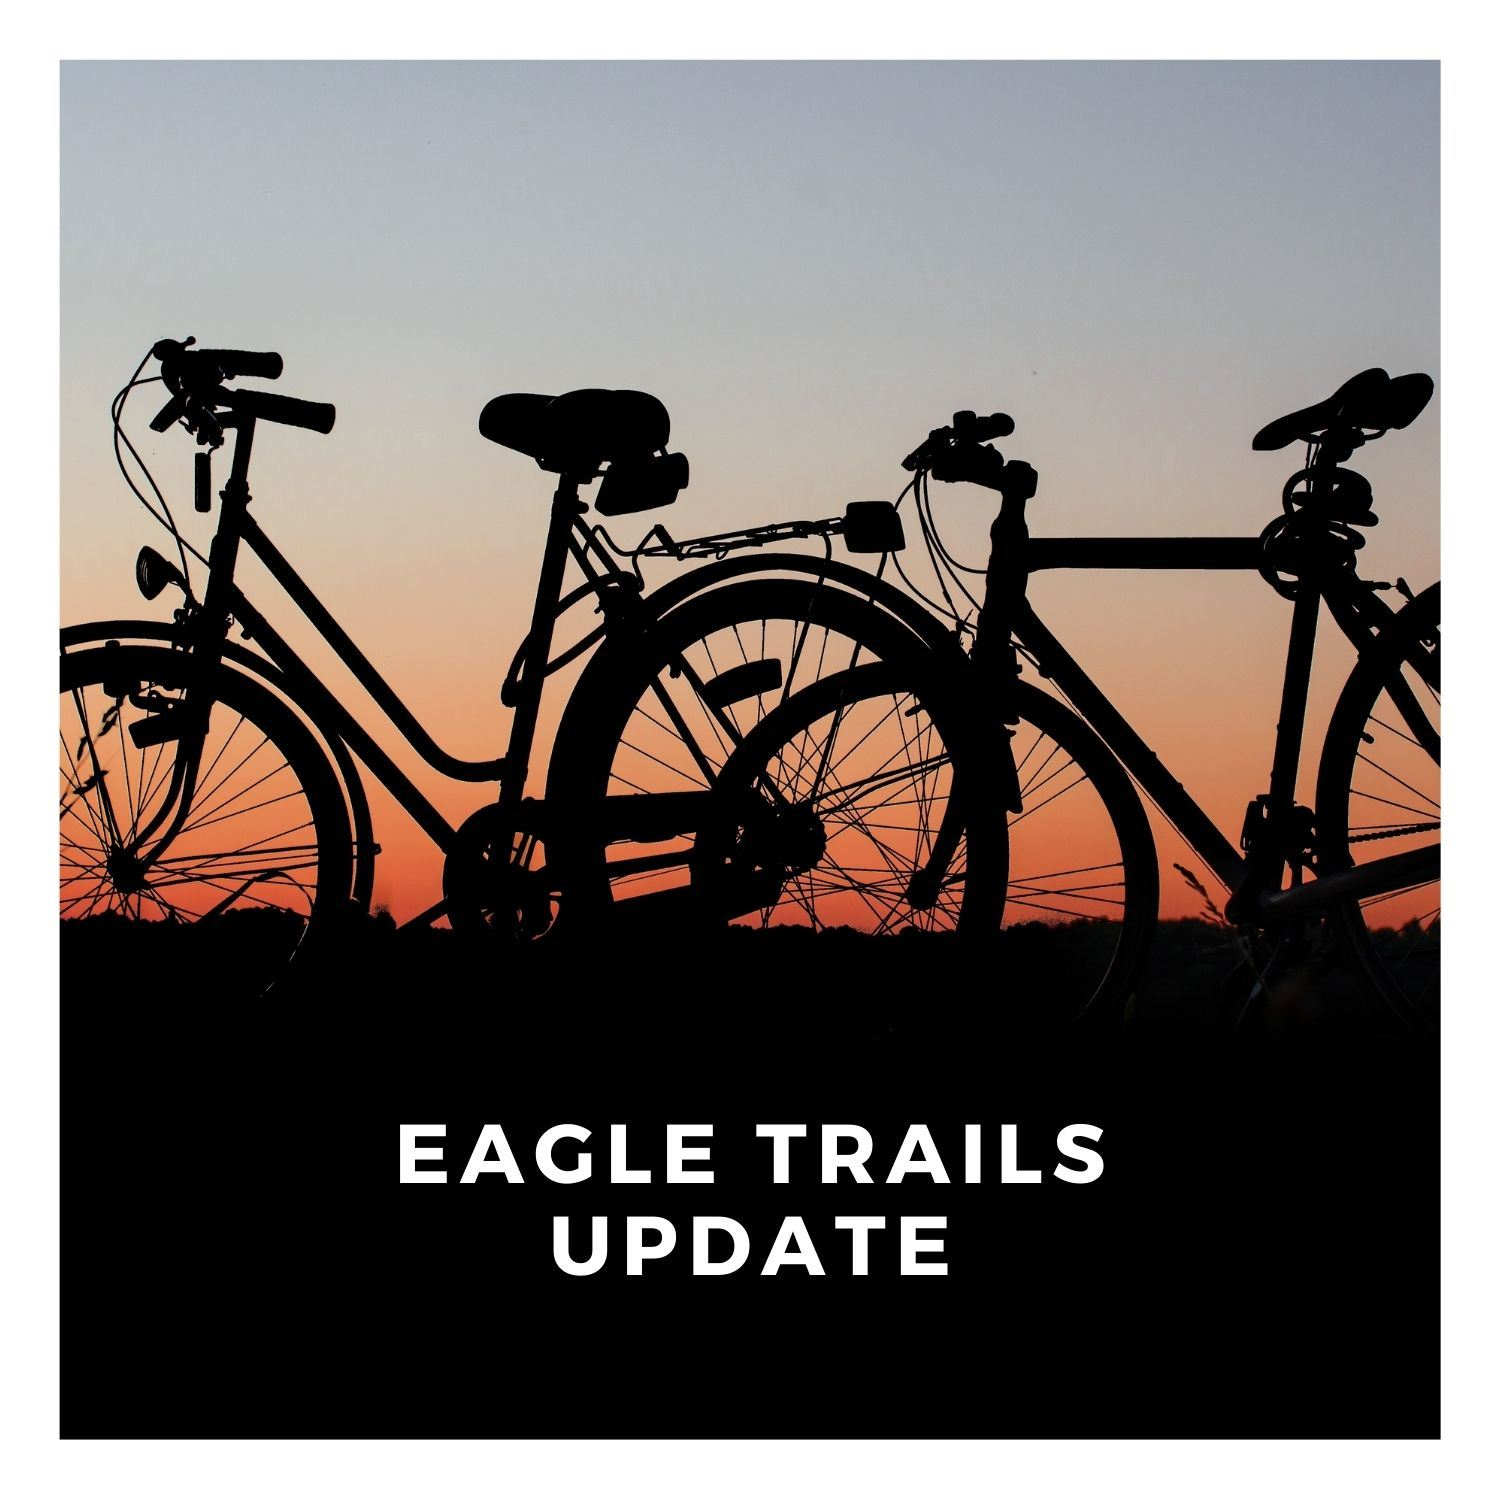 EAGLE TRAIL UPDATE (1)